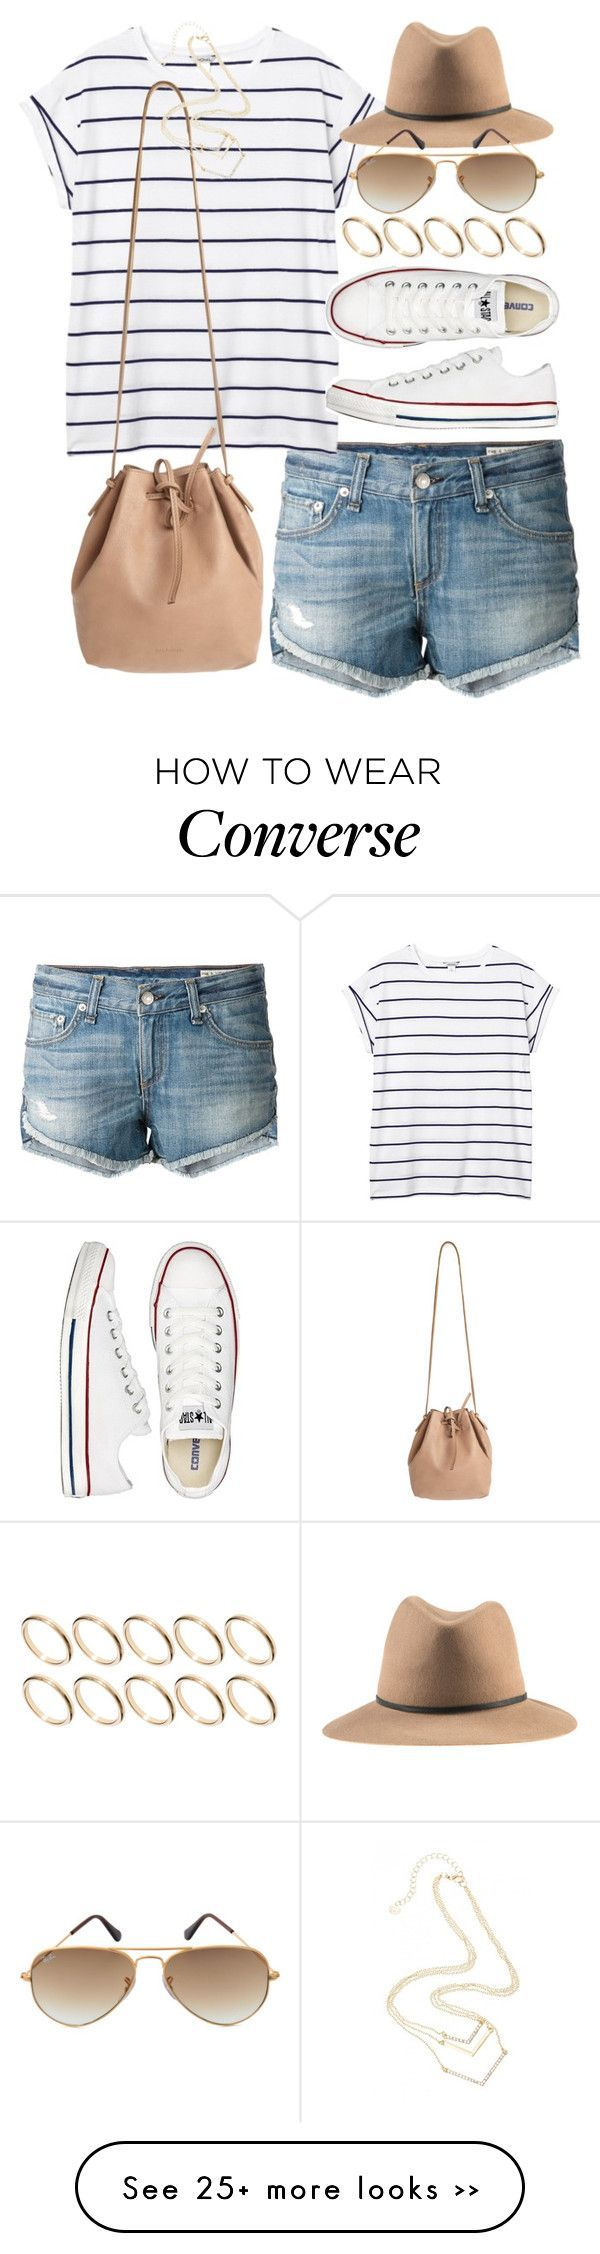 I love my converse and I'm a very casual dresser so this is…